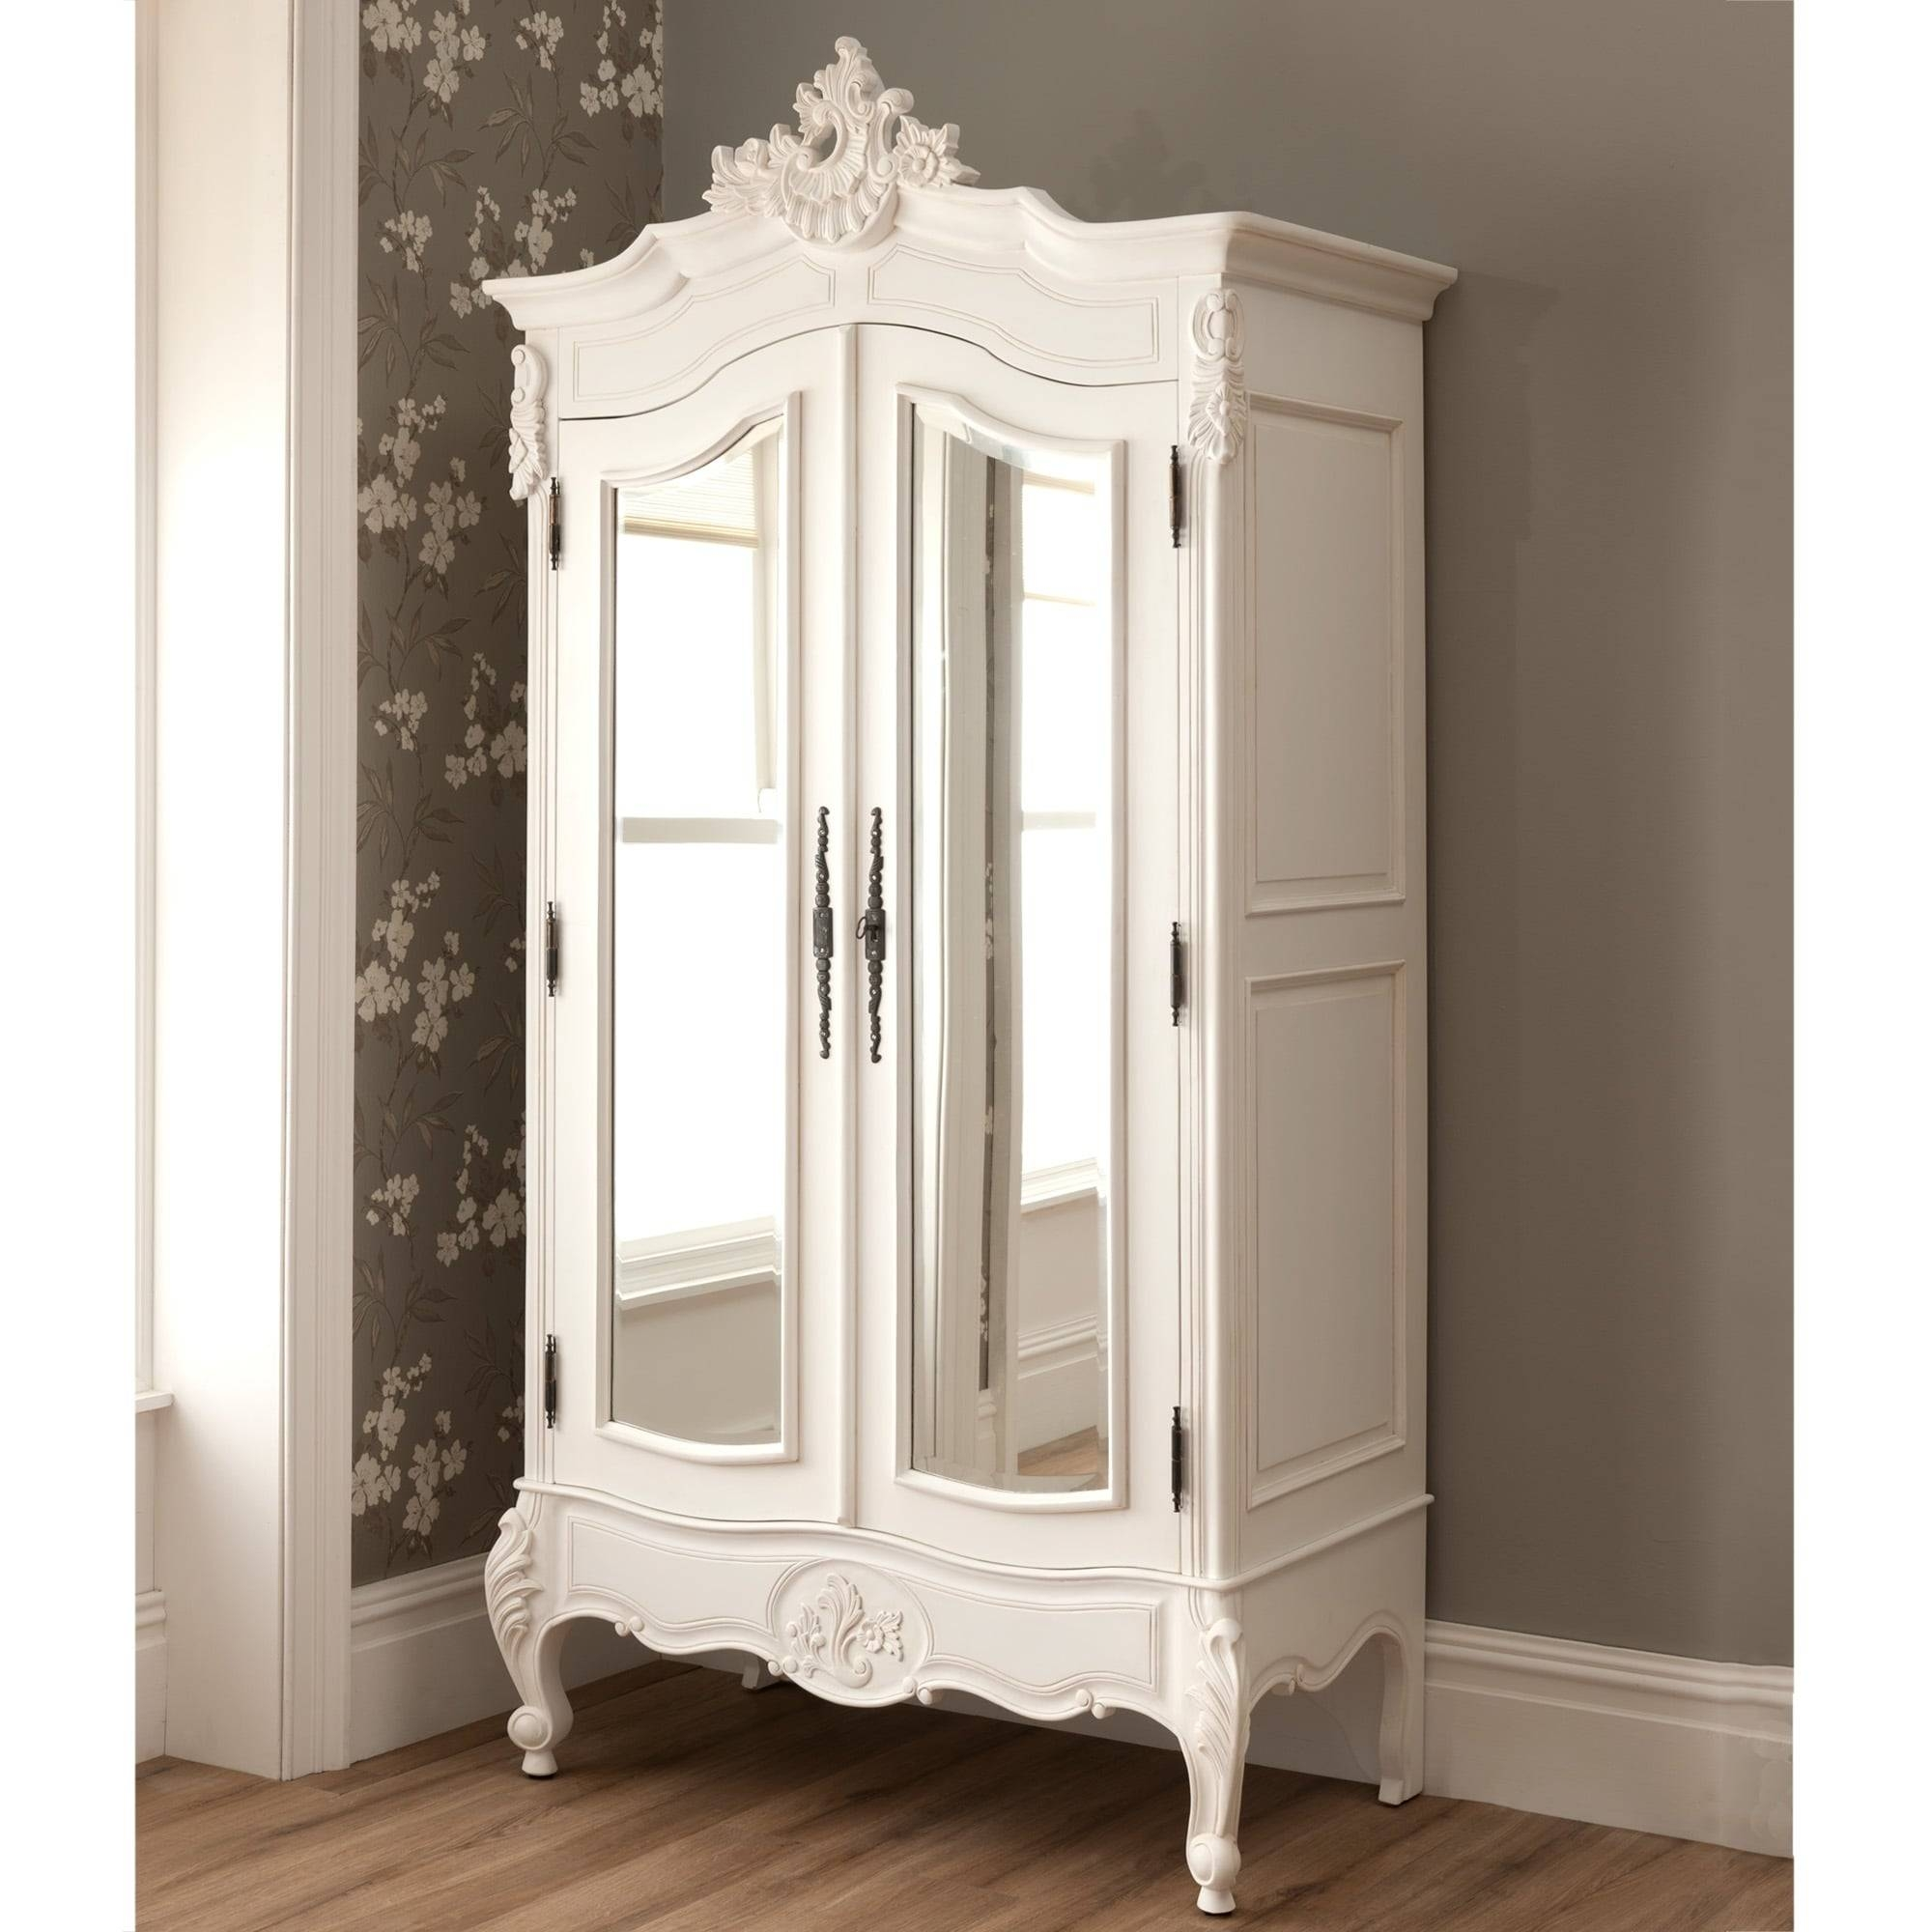 La Rochelle Shabby Chic Antique Style Wardrobe | Shabby Chic Furniture intended for Cheap French Style Wardrobes (Image 9 of 15)